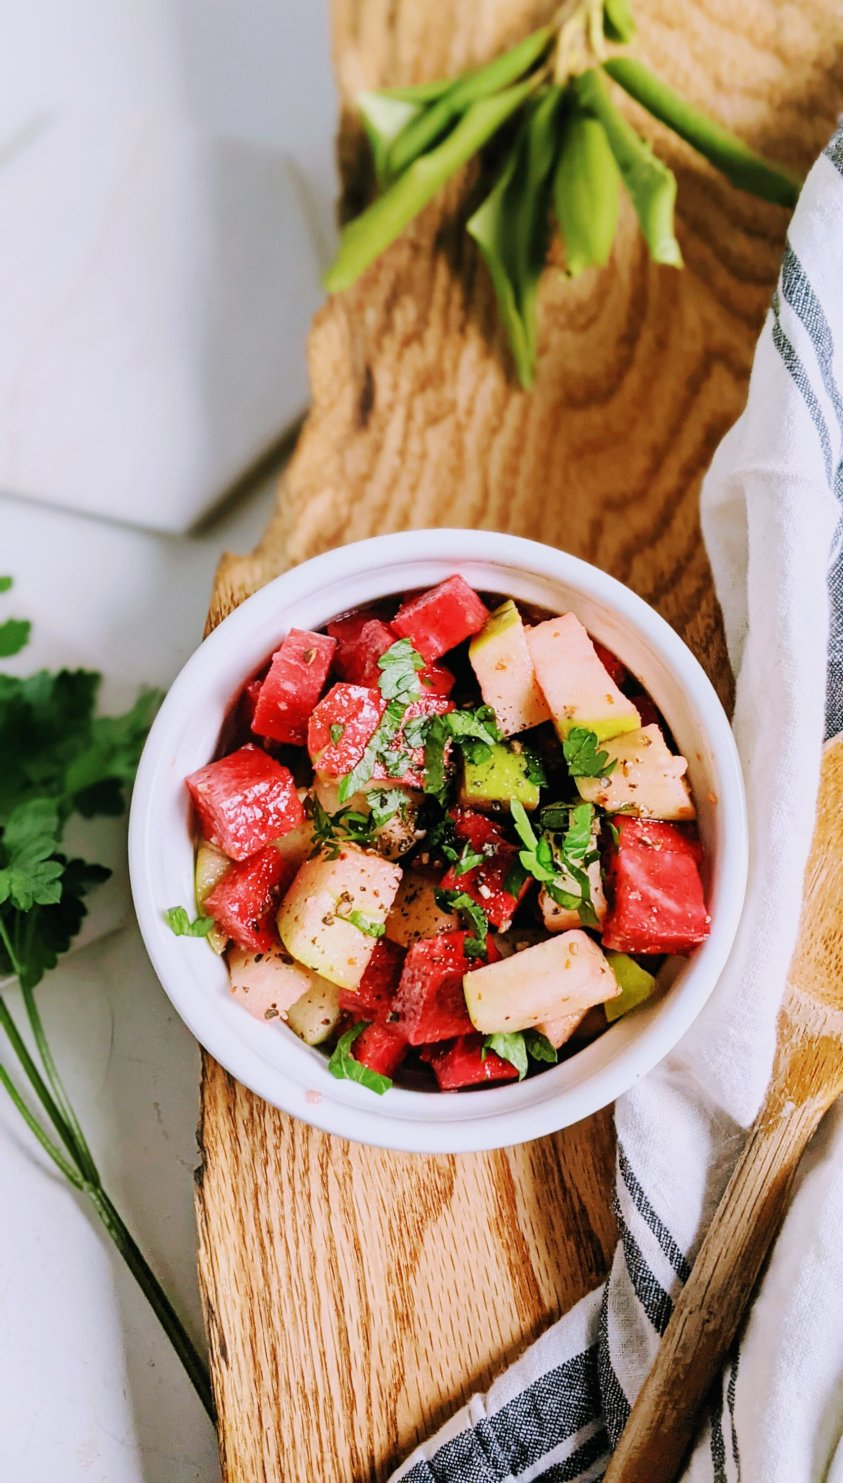 raw beet salad recipes with apple vegan gluten free vegetarian healthy can you eat beets raw?  beetroot and apple salad recipes healthy gluten free